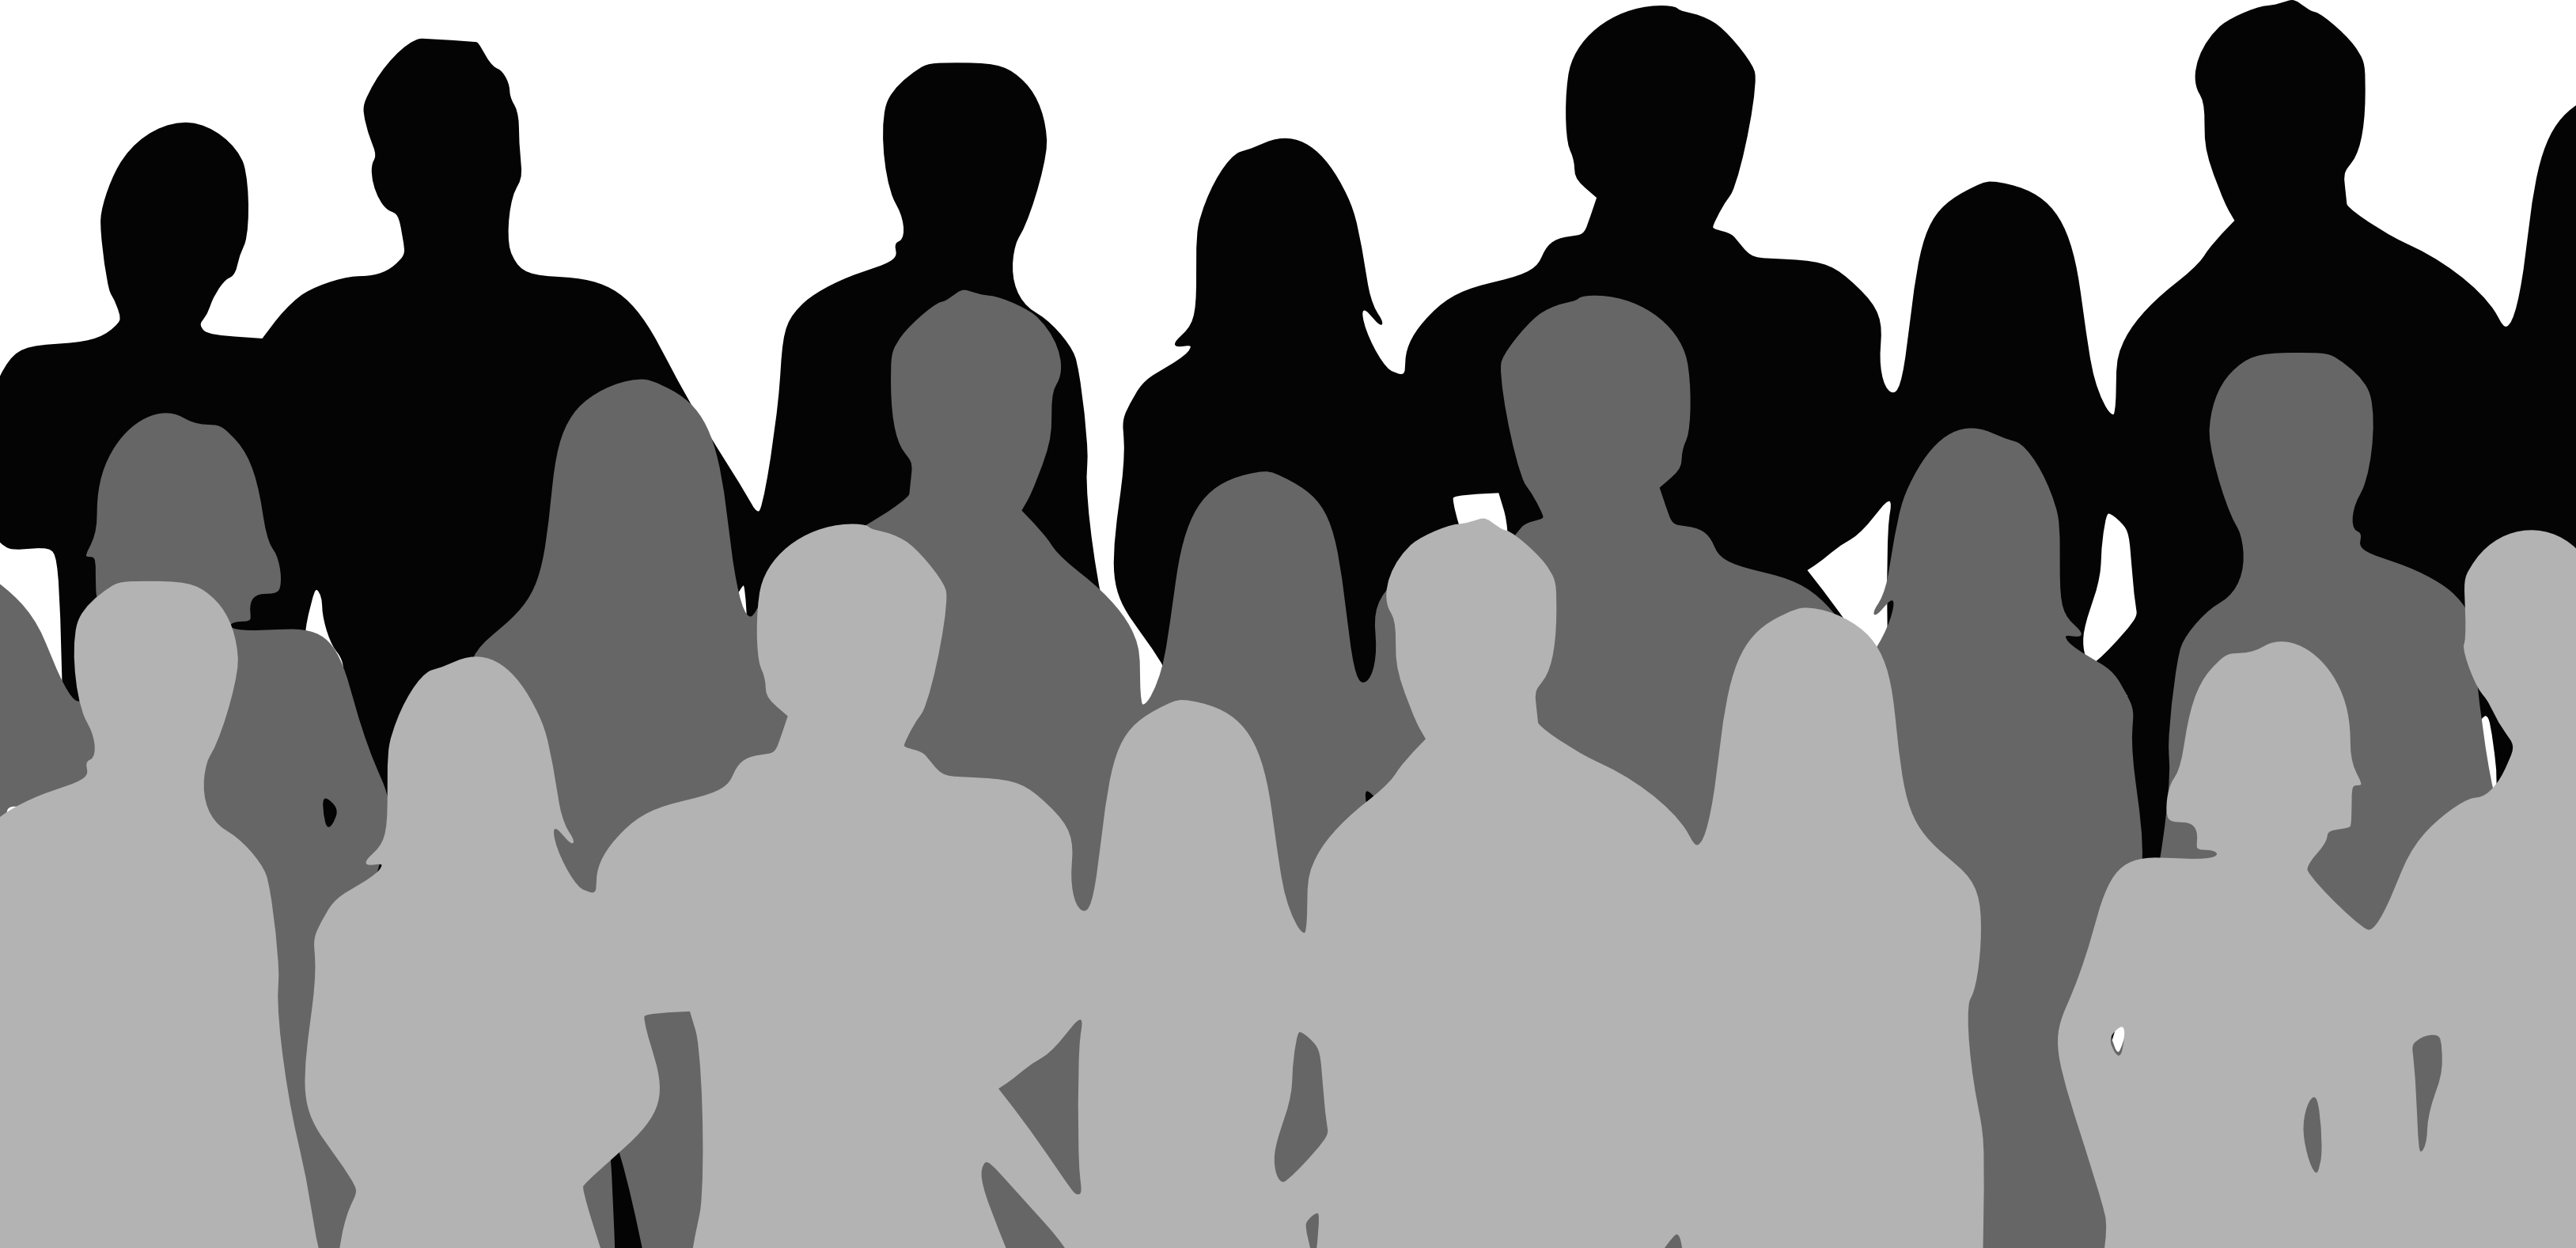 Audience Silhouette Clipart.